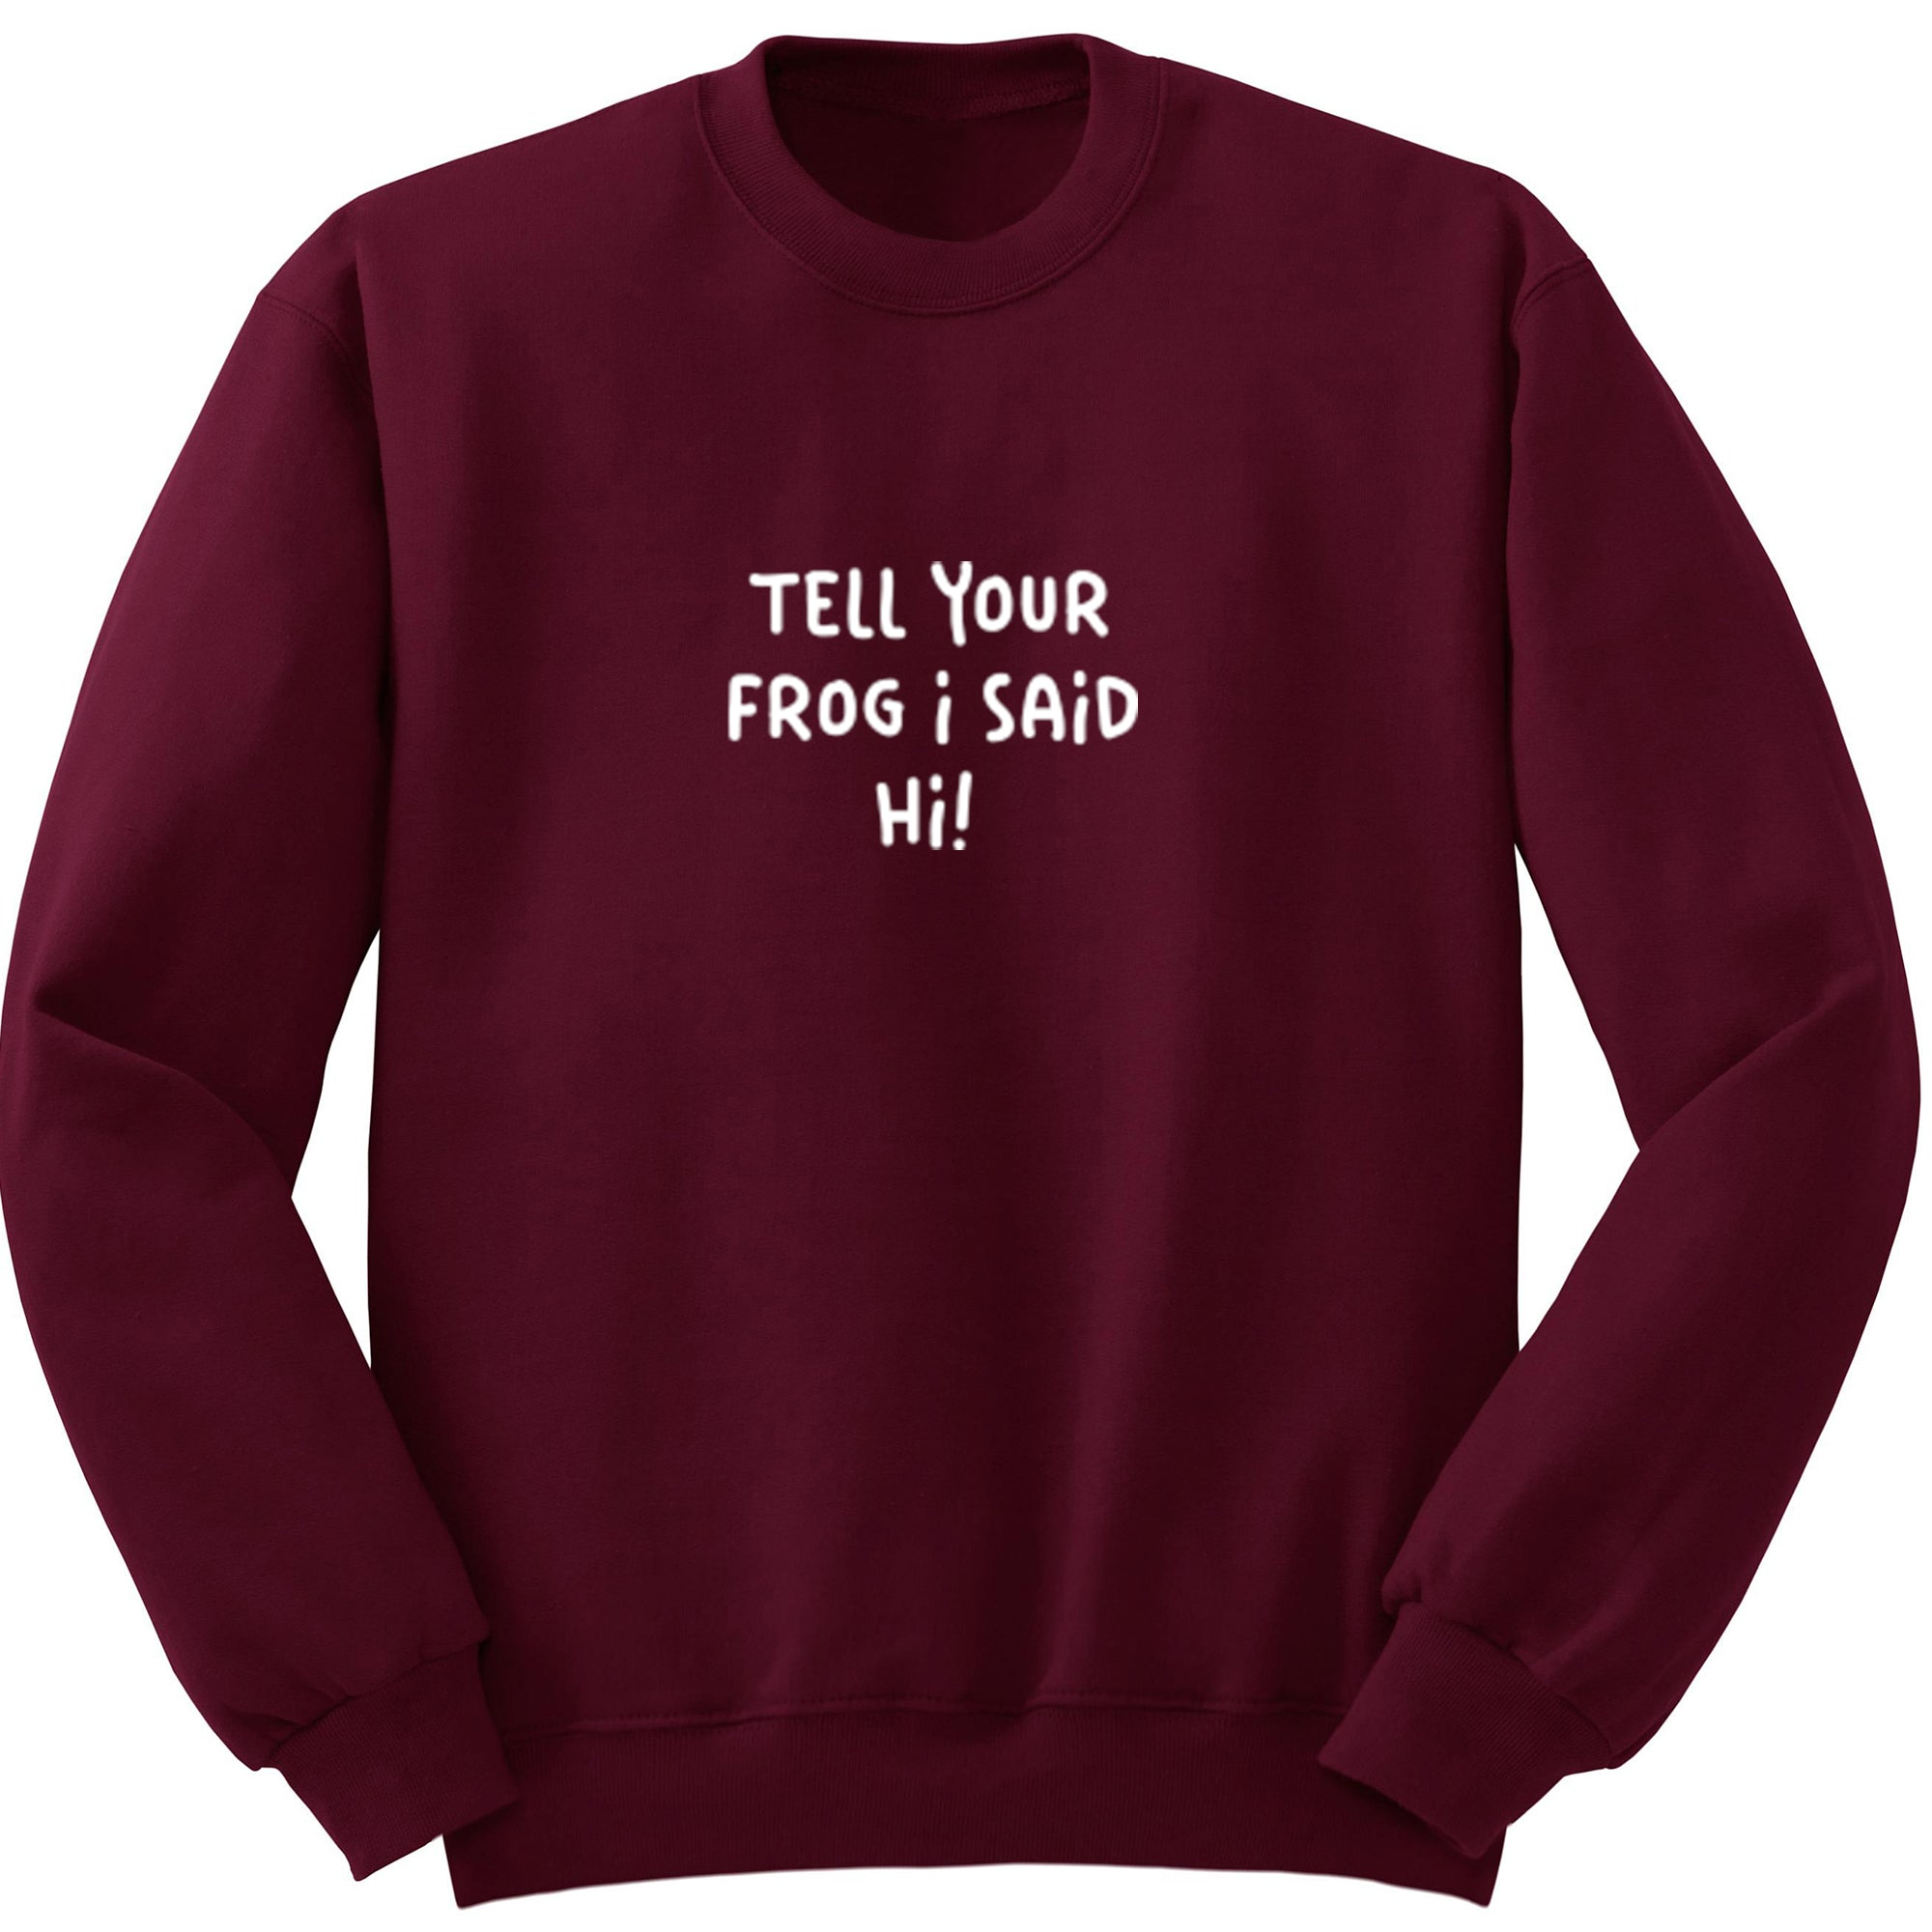 Tell Your Frog I Said Hi! Unisex Jumper S1192